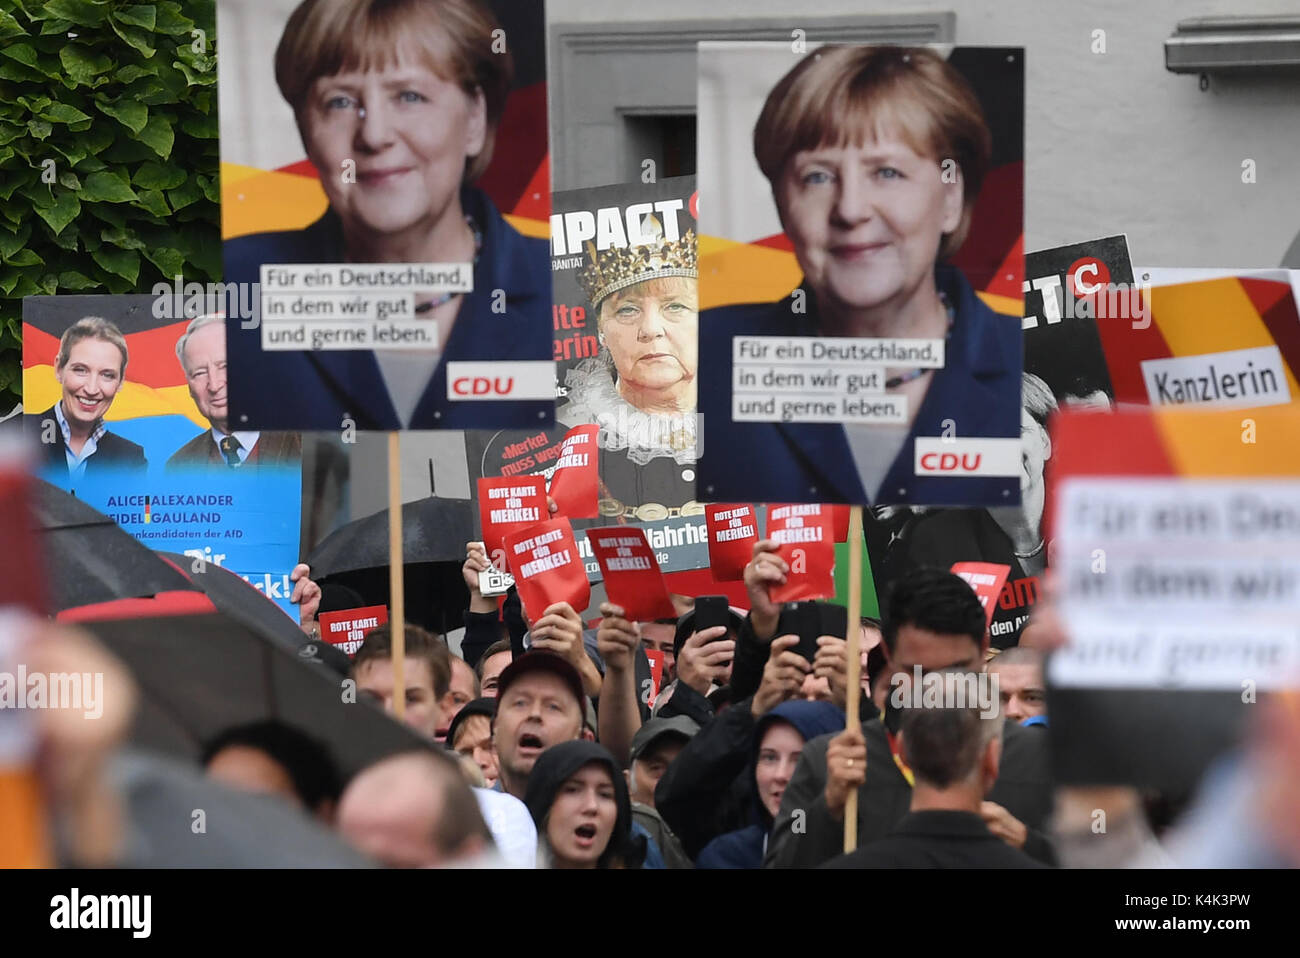 Supporters of different political parties voice their opinion during an CDU election campaign in Torgau, Germany, Stock Photo